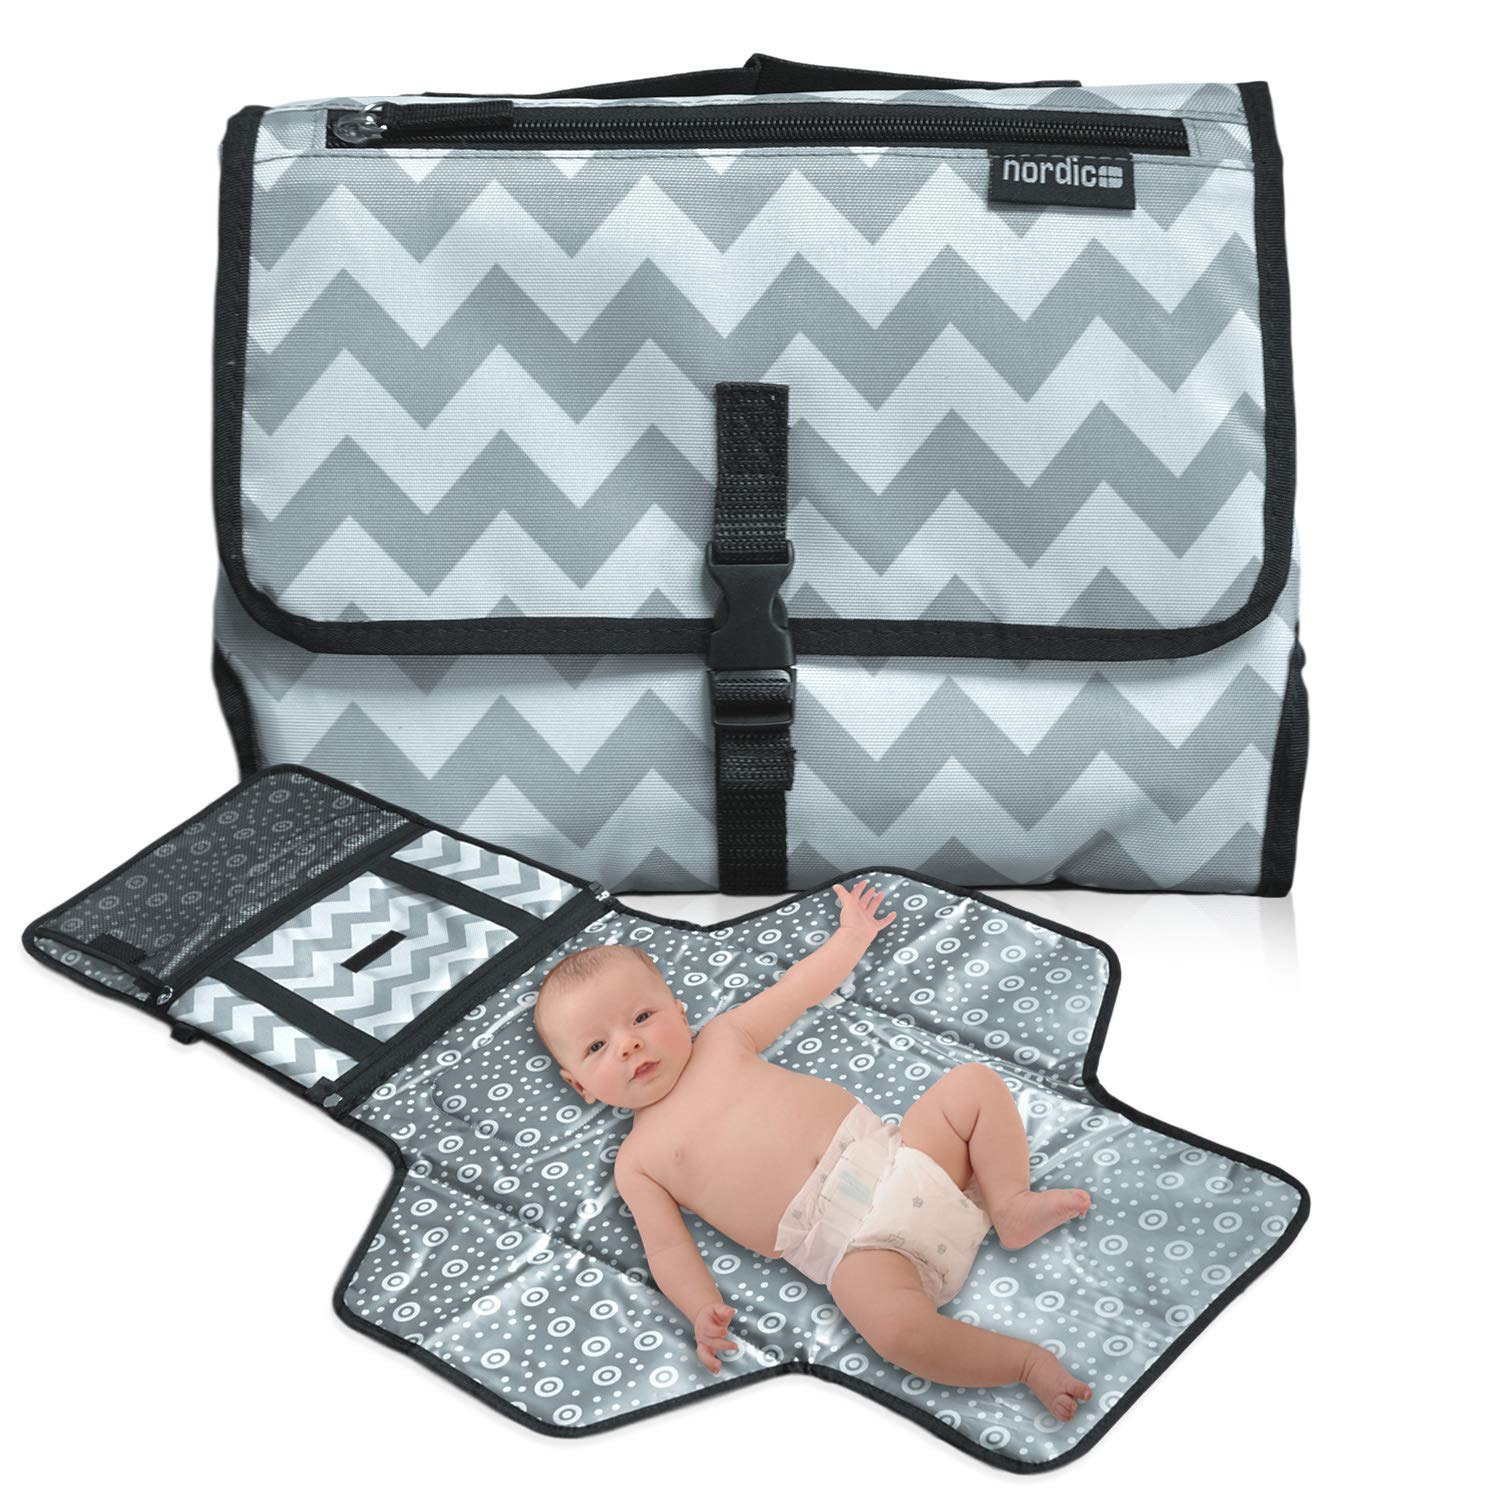 Daily Nordic Portable Travel Diaper Changing Pad Mat